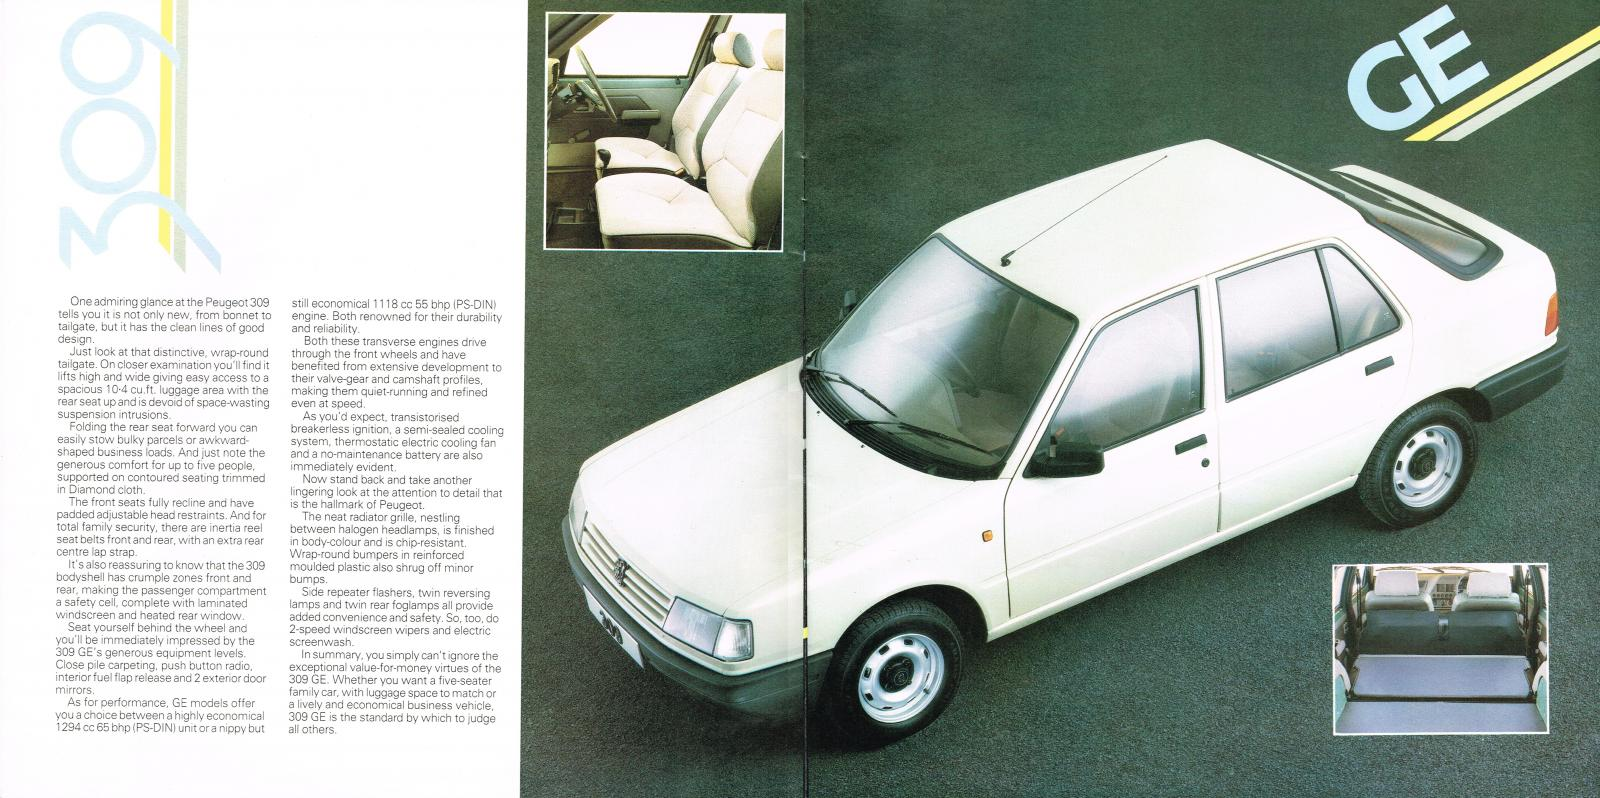 Peugeot 309 launch brochure 1986 10-11 GE.jpg